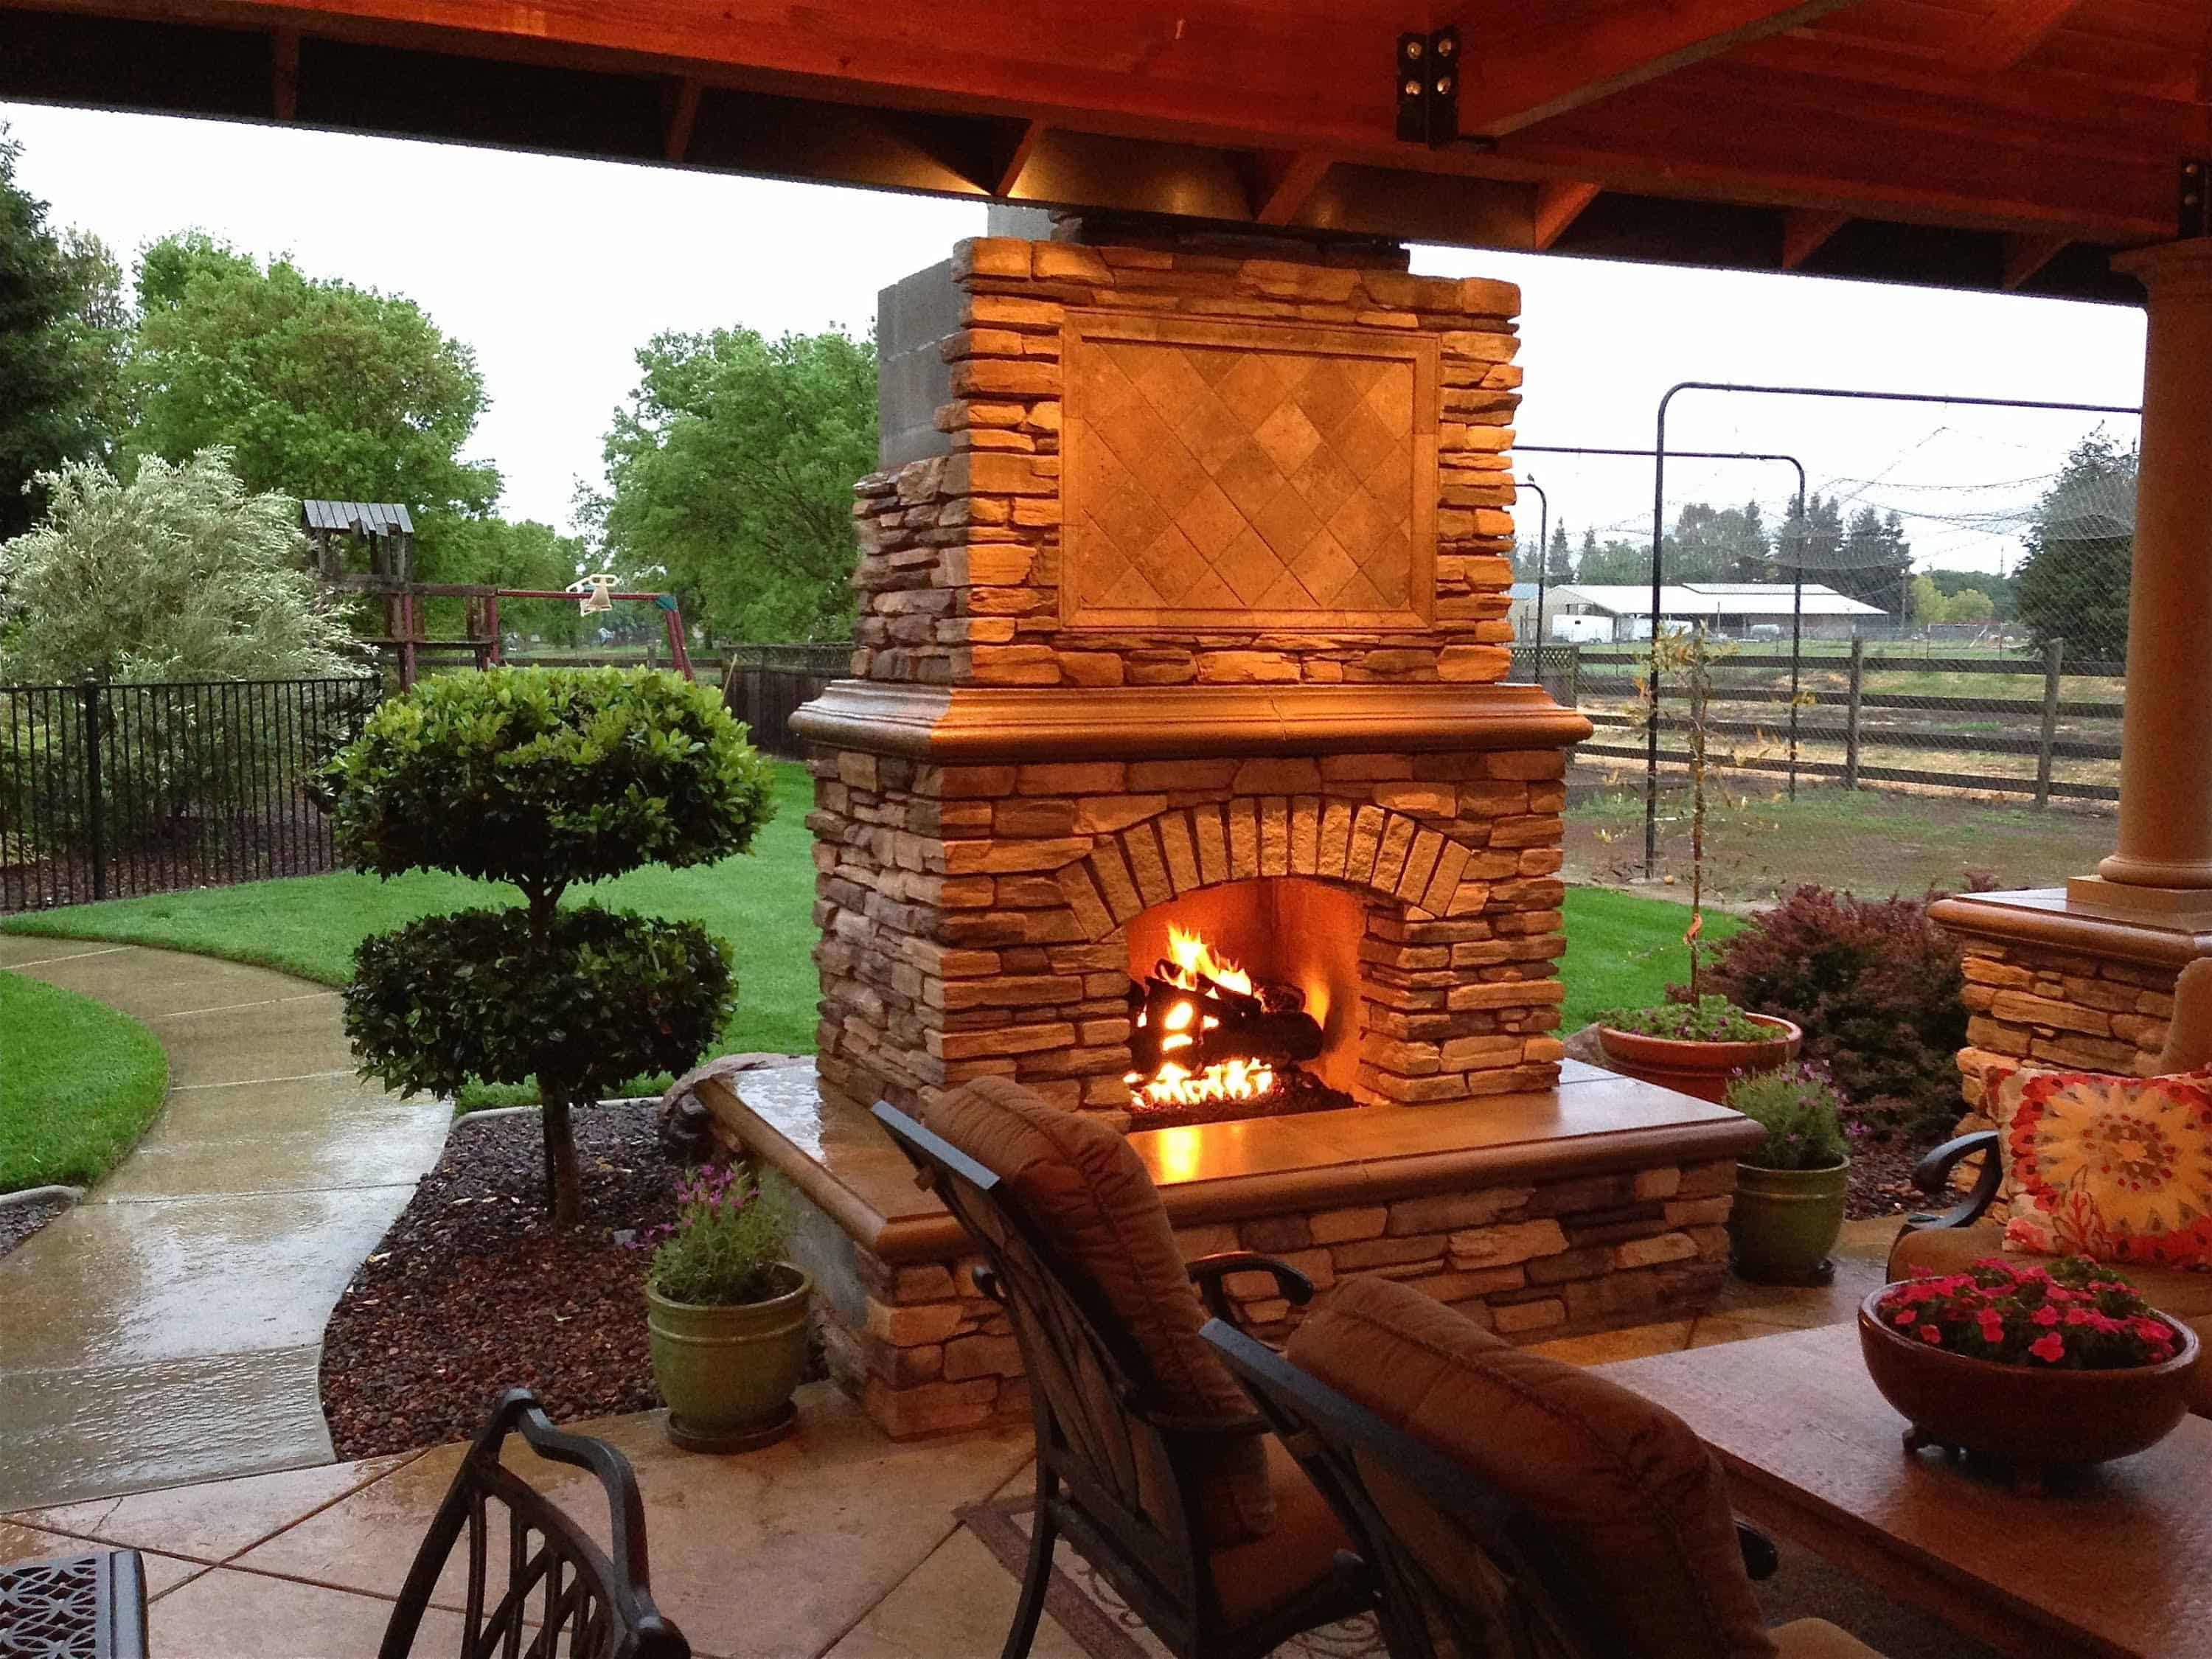 The beauty of an outdoor fireplace is that it brings warmth to the entire outdoor space.